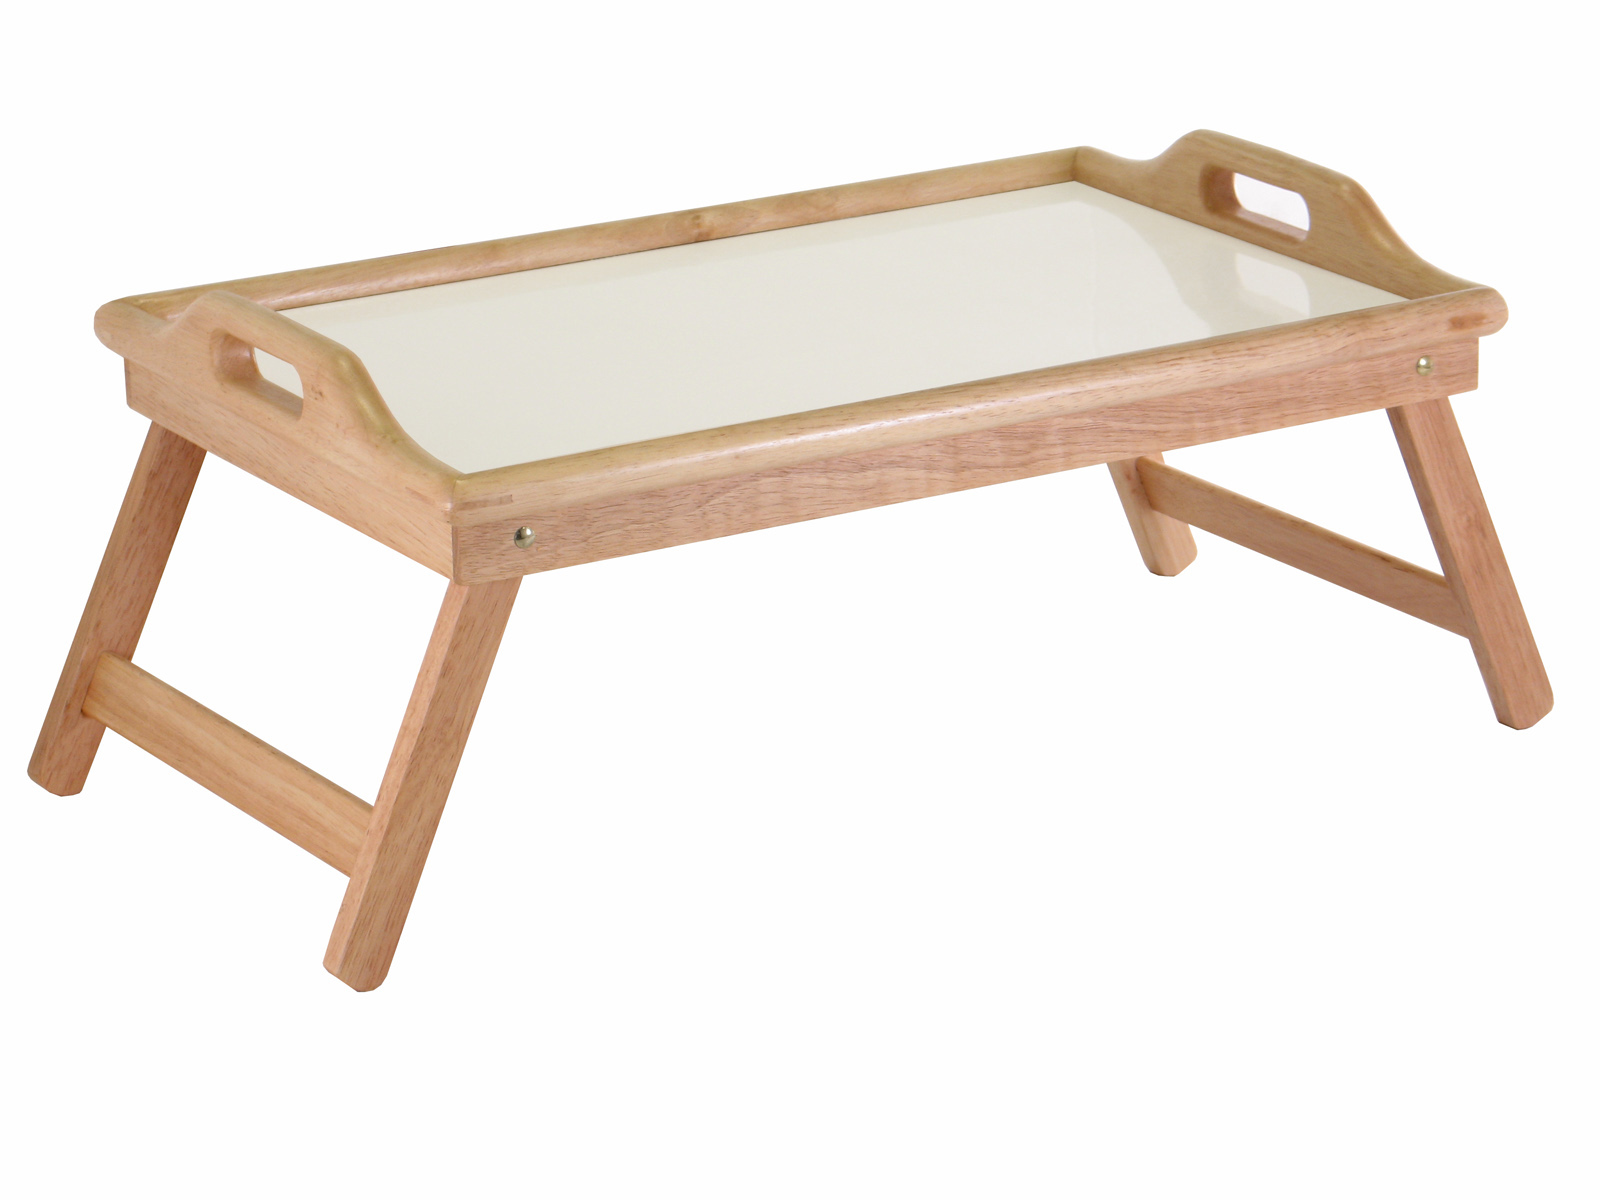 Winsome 98122 Bed Tray with Handle - Natural/White Top